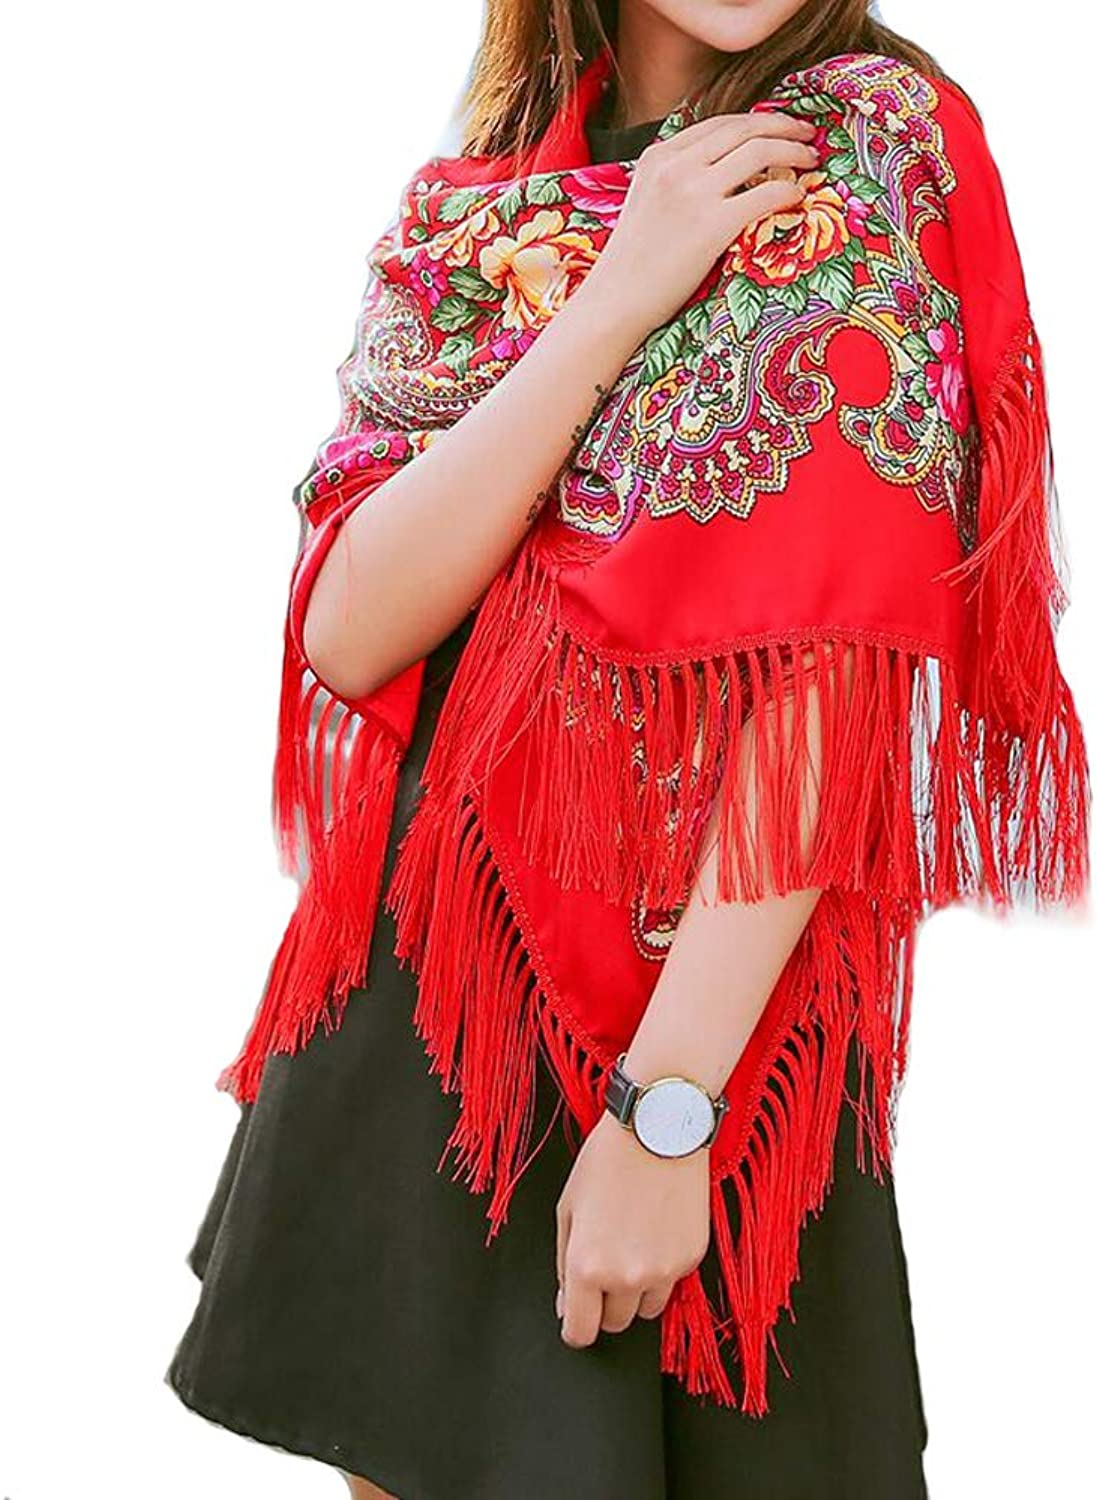 Shawls and Wraps Shawls for Women,Womens Scarves,Red Head Scarf Wrap with Tassel